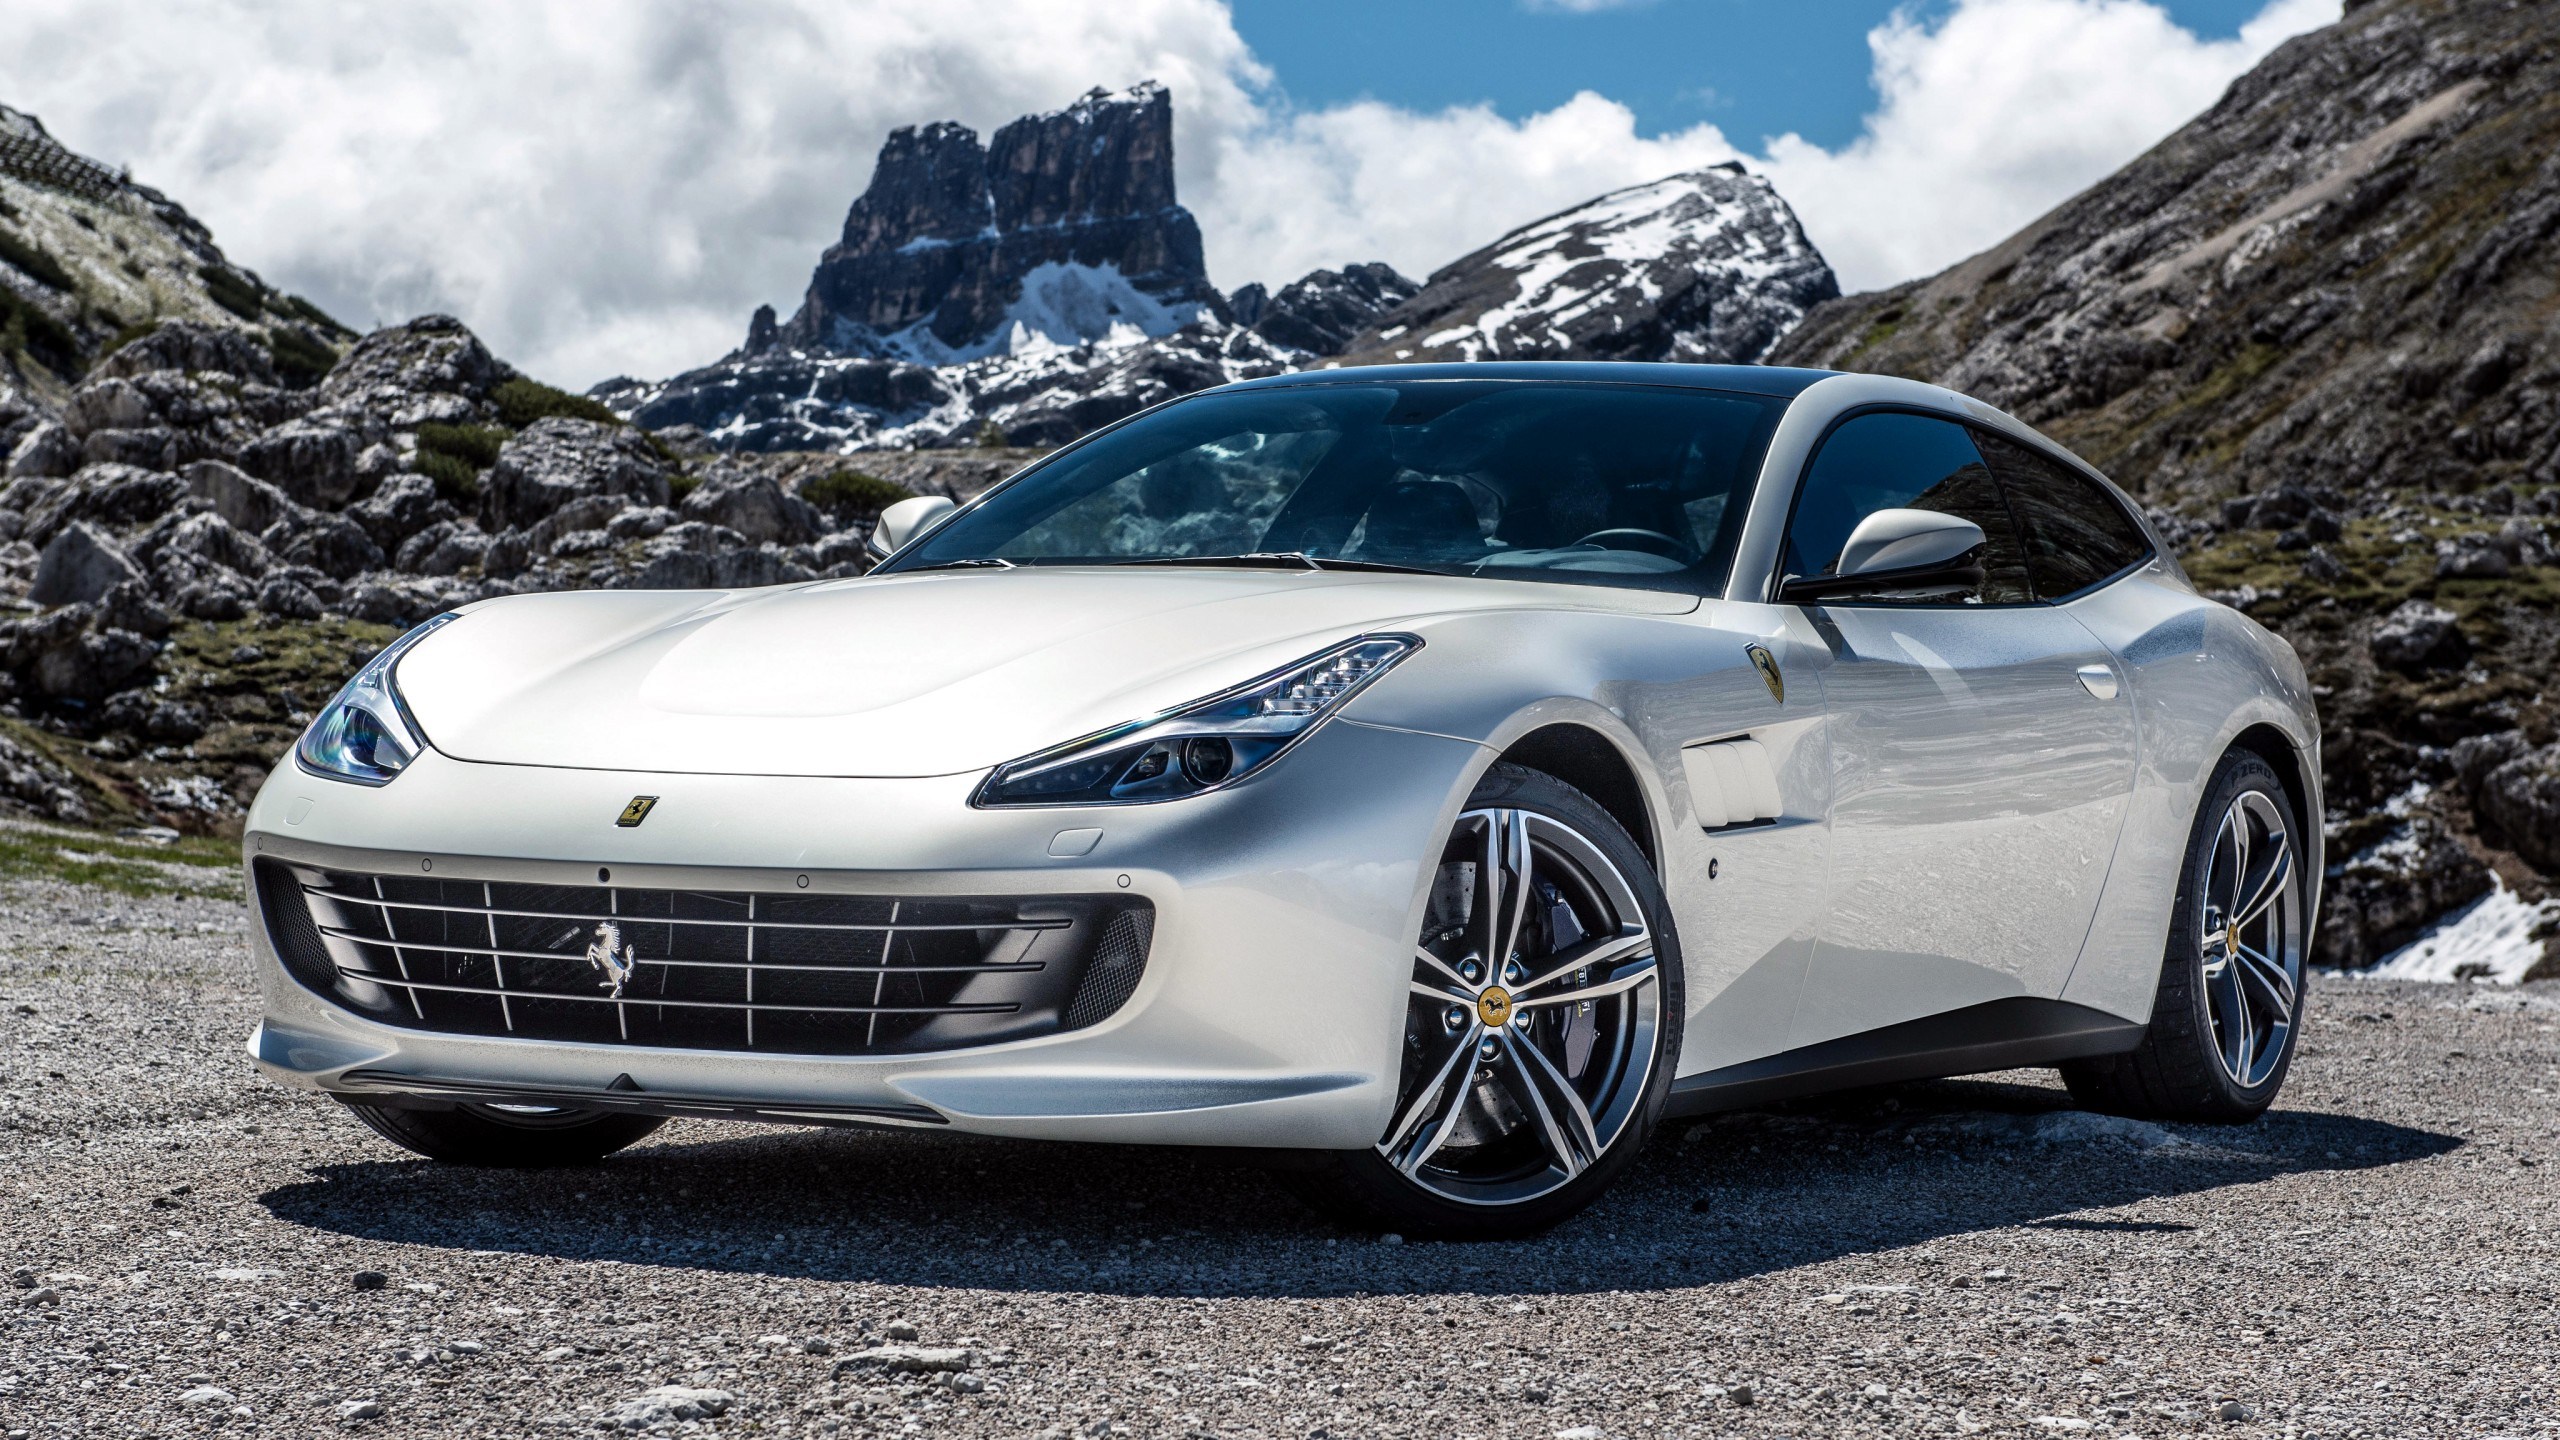 Wallpaper Ferrari Gtc4 Lusso Supercar White Cars Bikes 11517